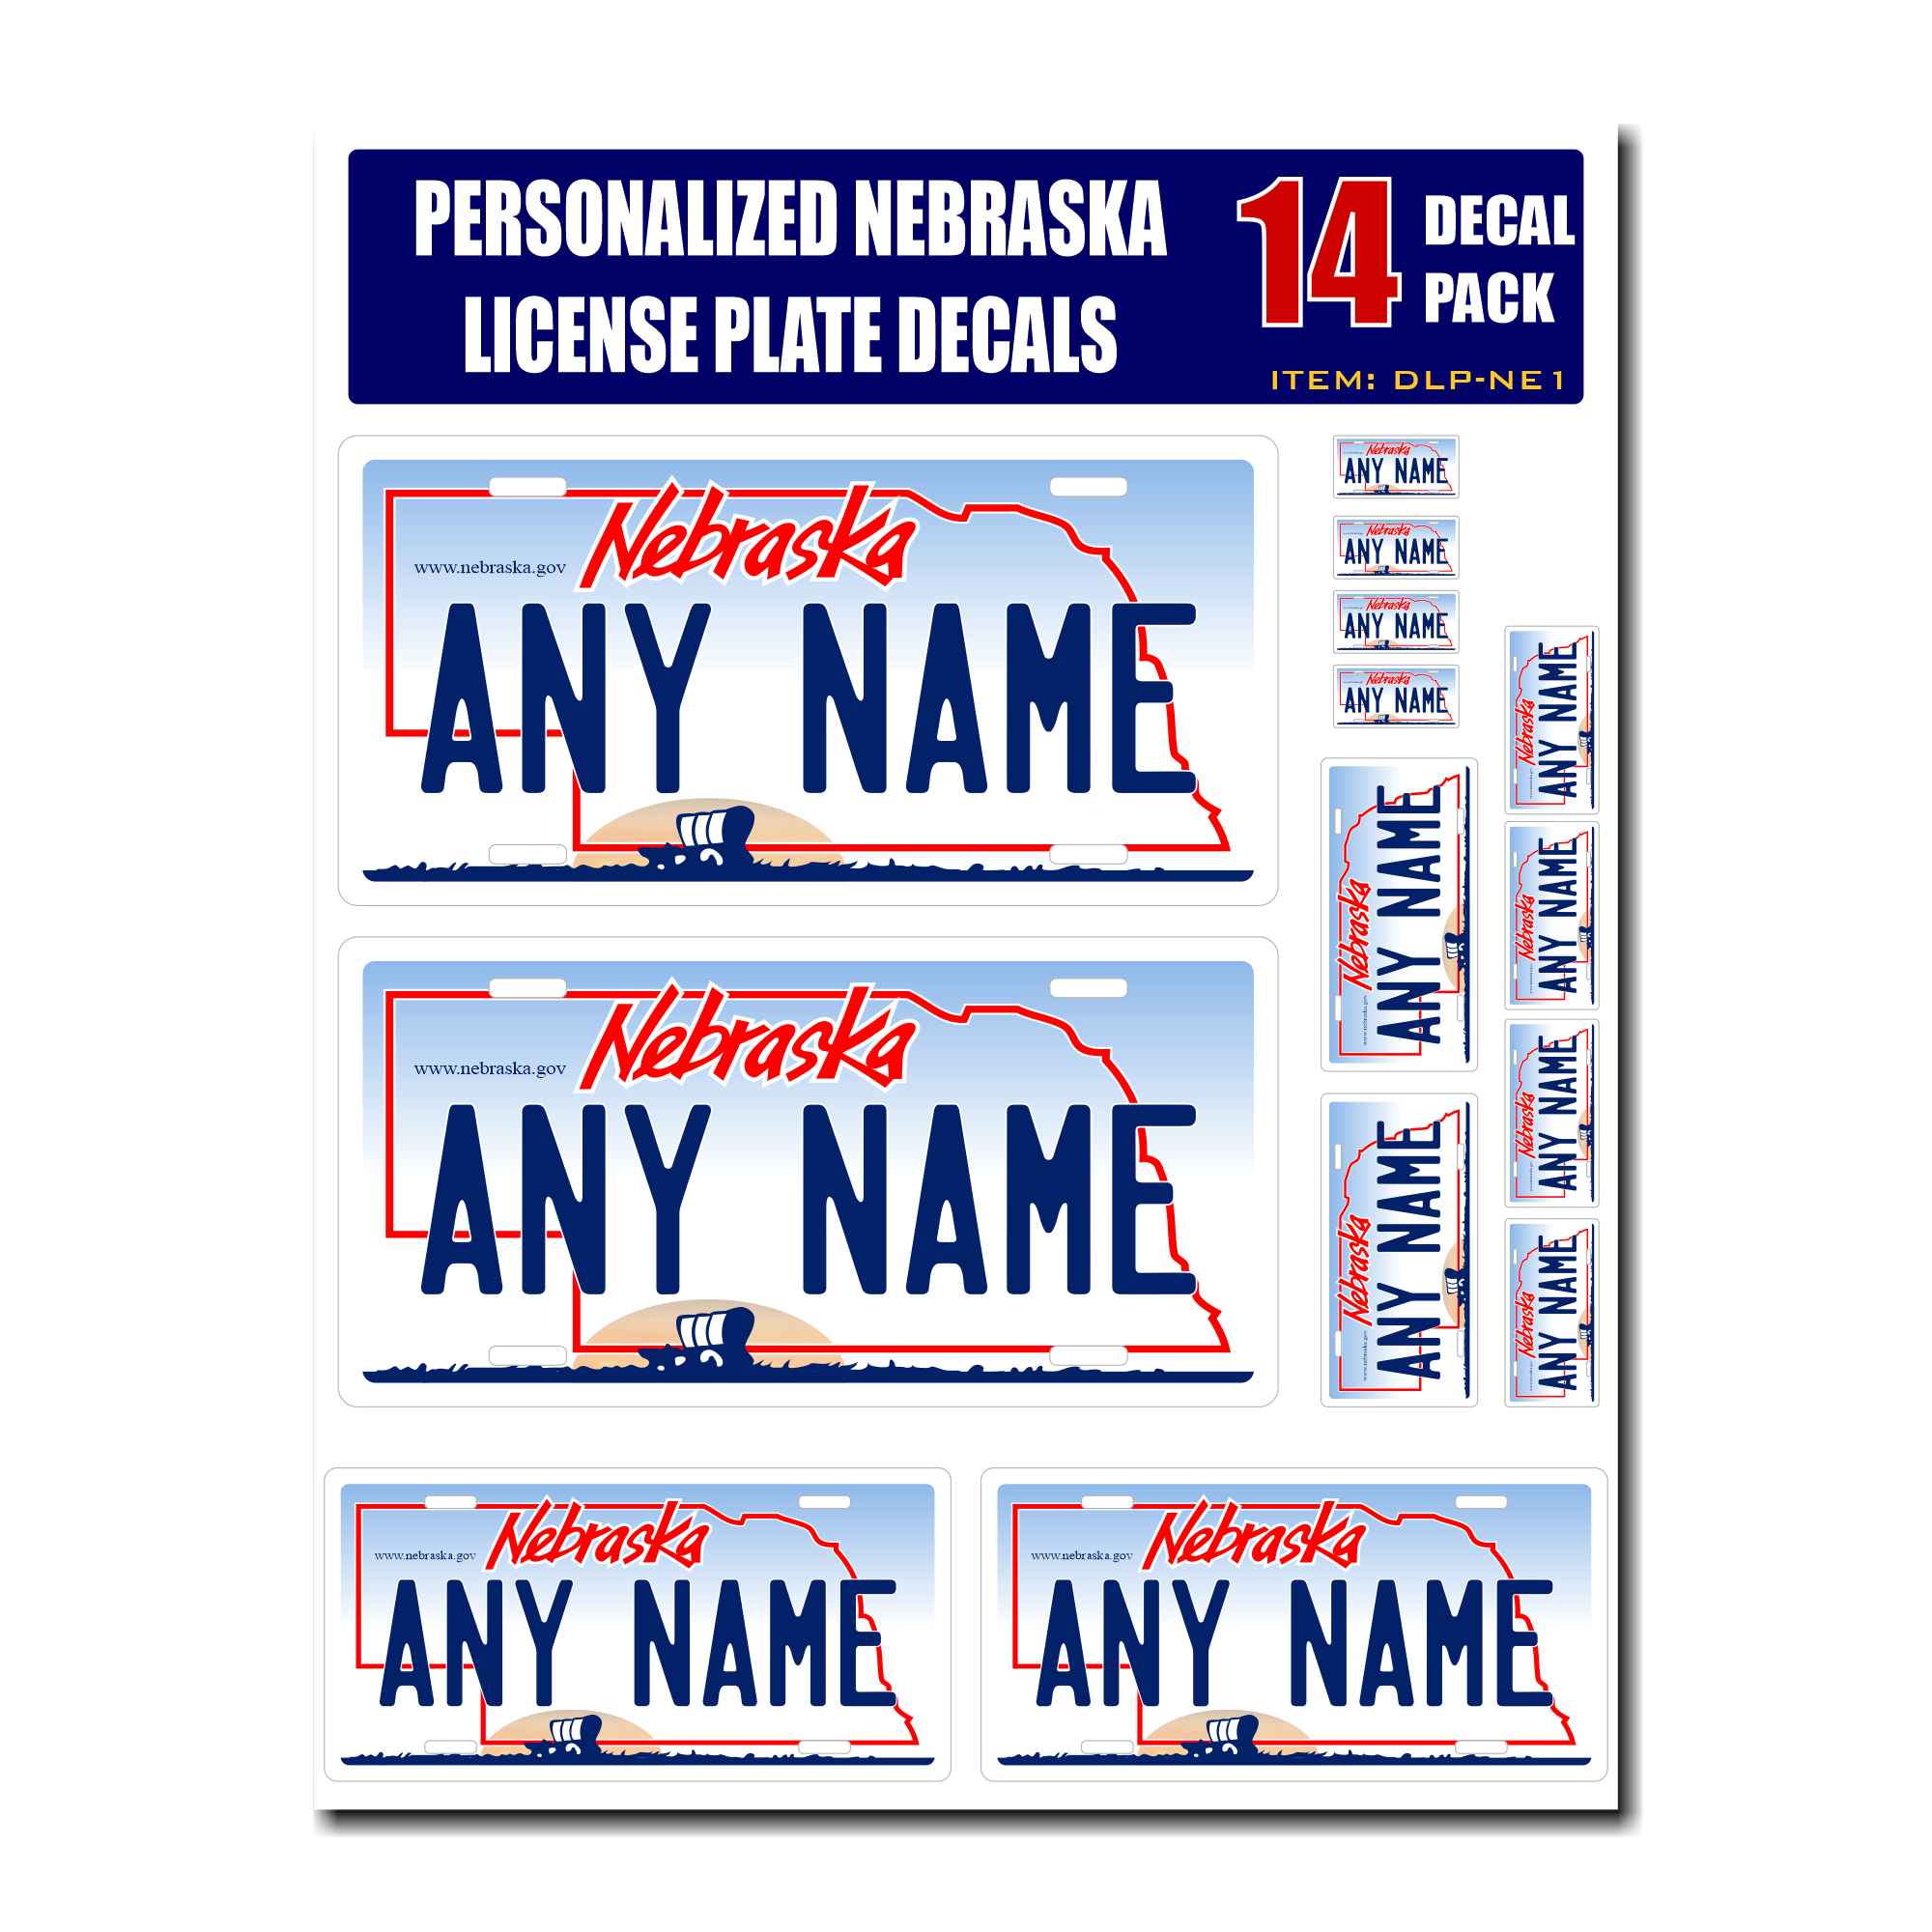 Personalized Nebraska License Plate Decals - Stickers Version 1